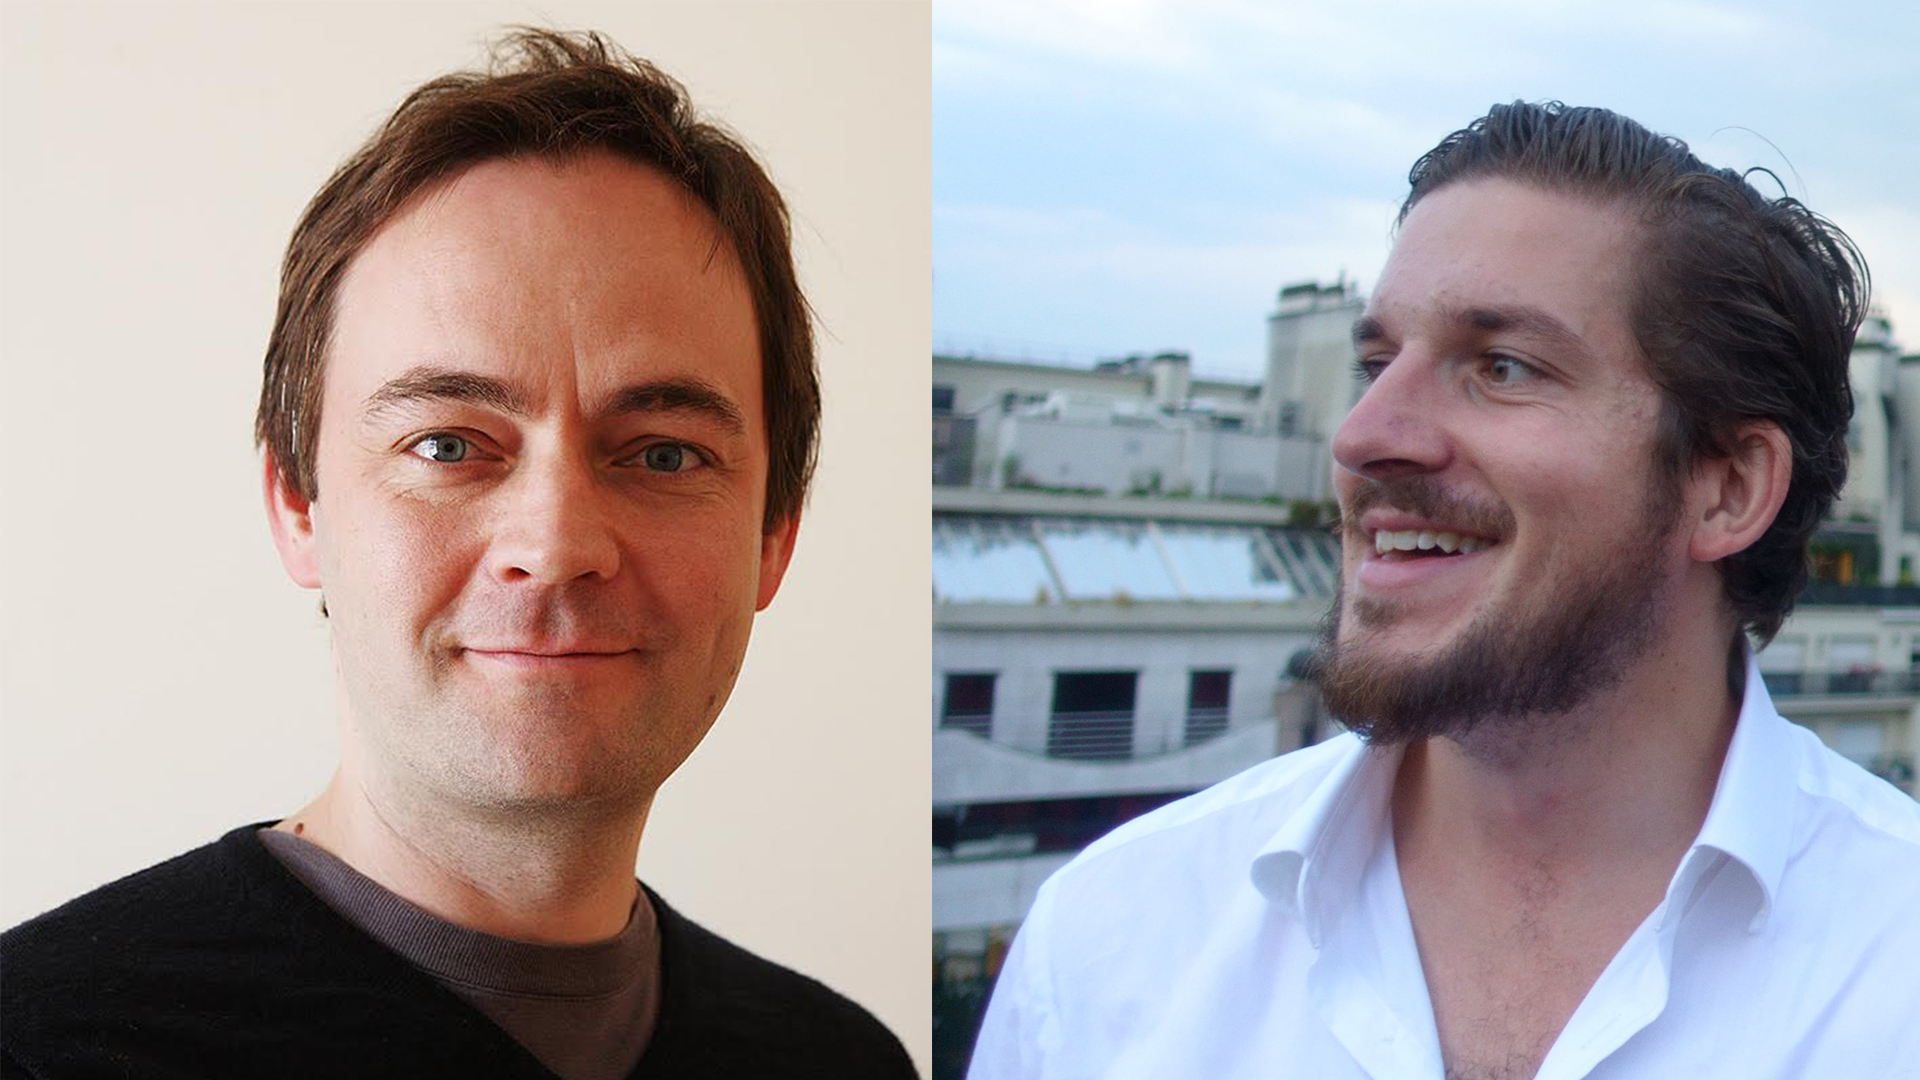 INTERVIEW WITH DIRECTORS TOBY MARTIN HUGHES AND JAMES SHANNON